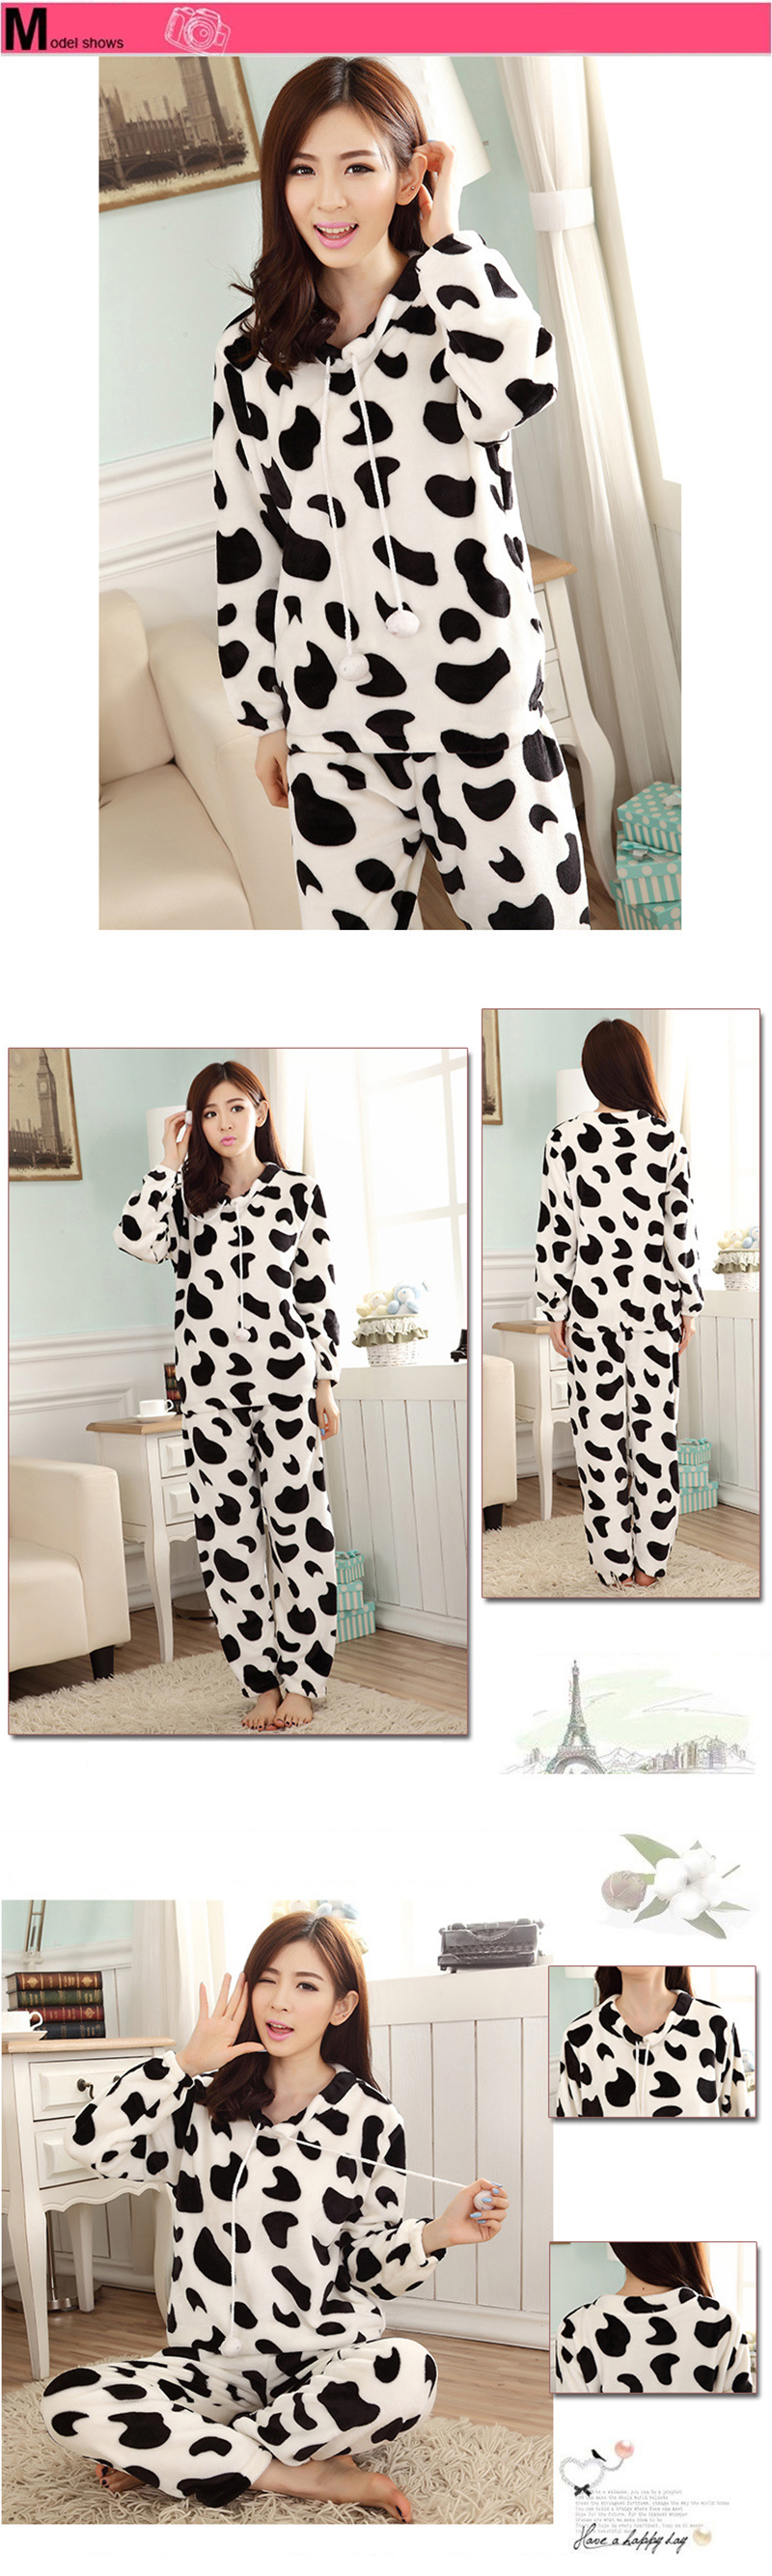 JULY'S SONG Cartoon Flannel Women Pajama Sets Autumn and Winter Cute Female Homewear Thick Warm Women Sleepwear 14